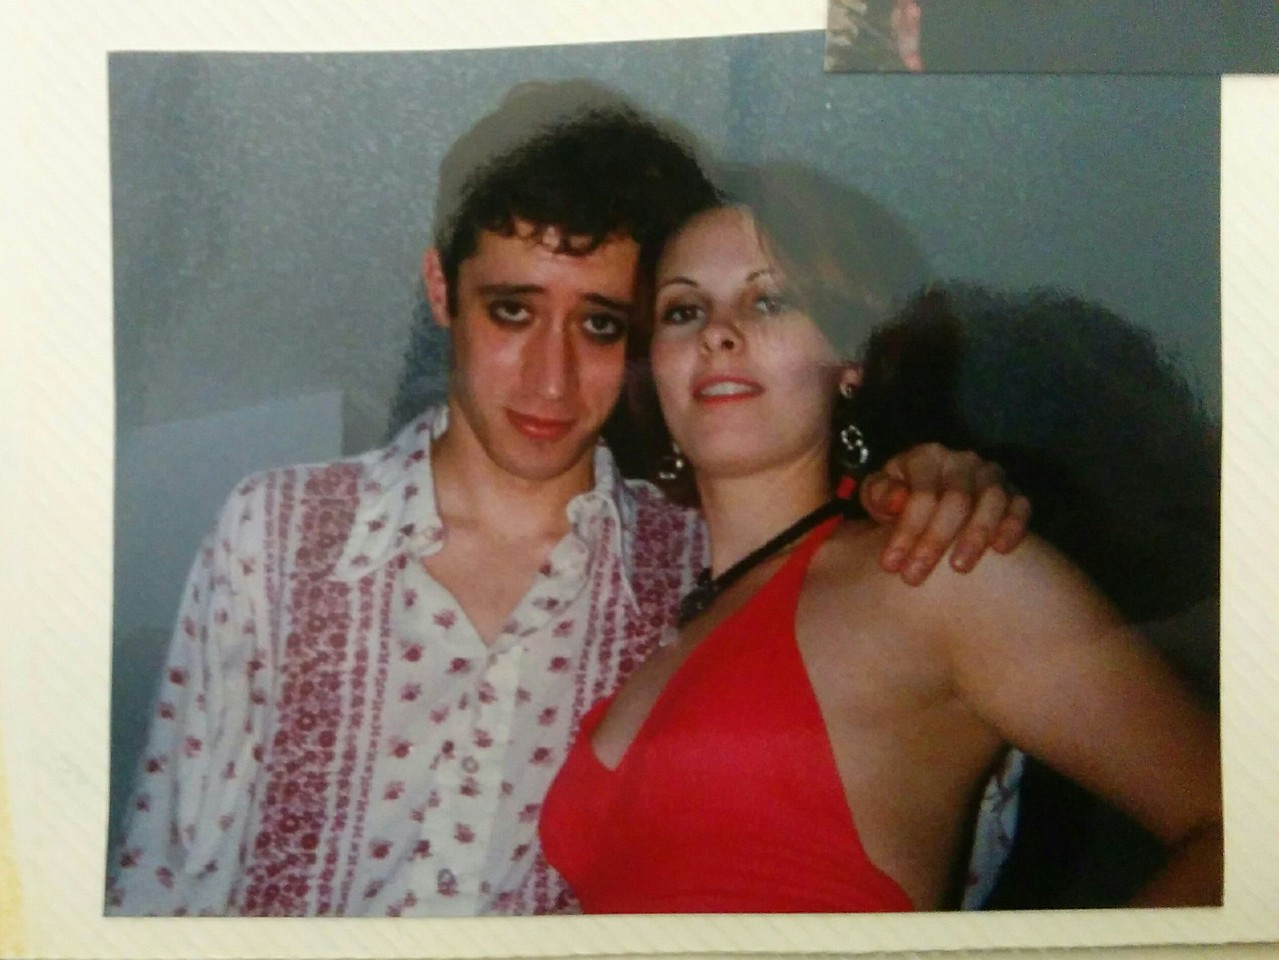 Our first photo together (Halloween 96)